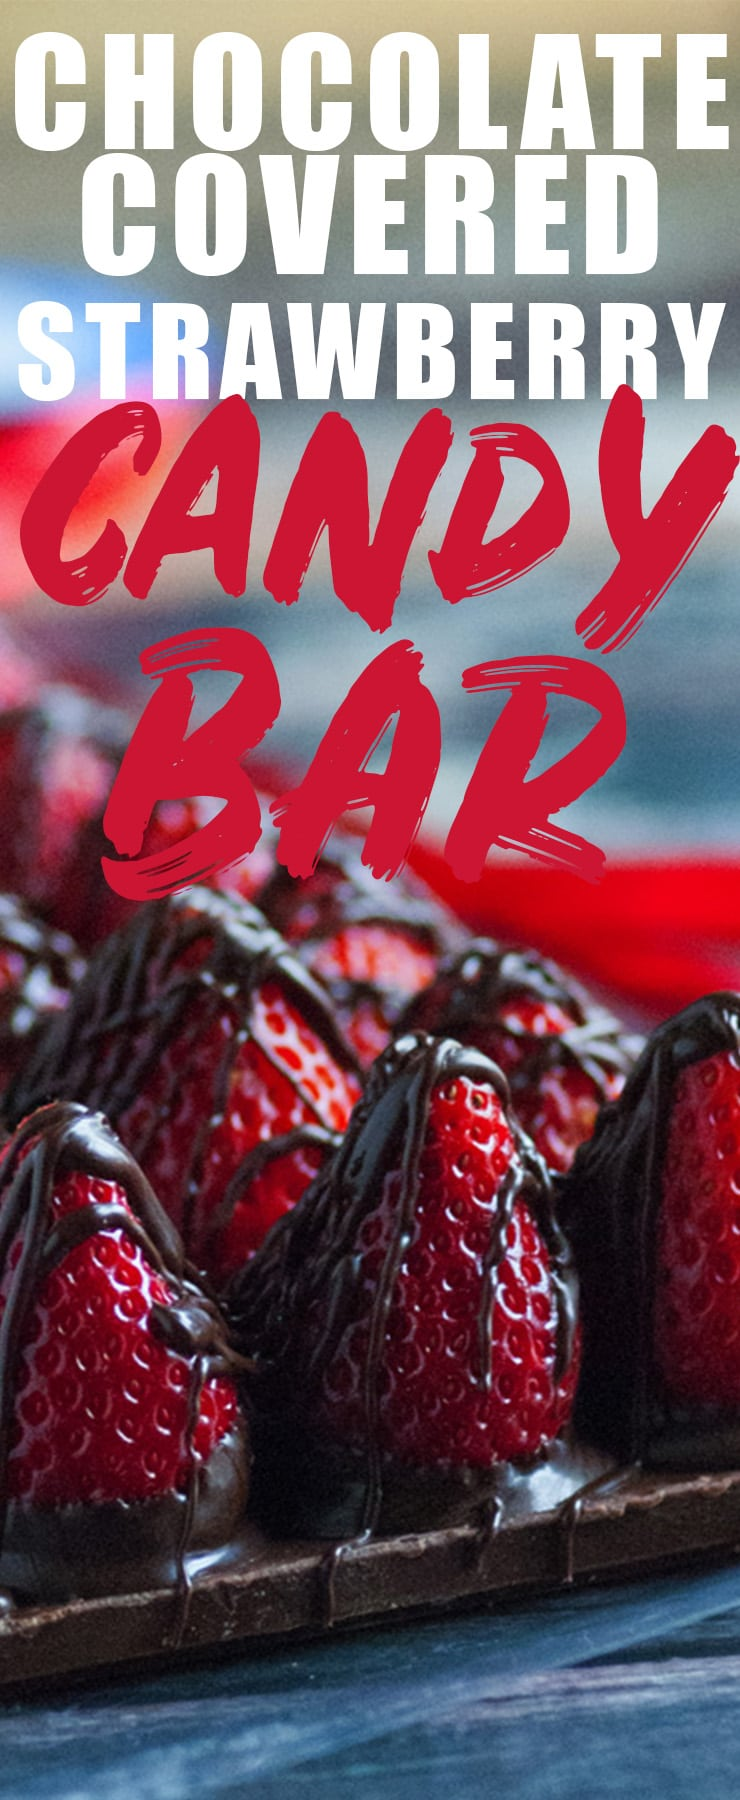 This Chocolate Covered Strawberry Candybar recipe is your DIY key to making a gourmet looking Valentines Day gift without spending a lot of time! It's easy and I show you exactly how to make it! #strawberry #candy #chocolate #dipped #valentinesday